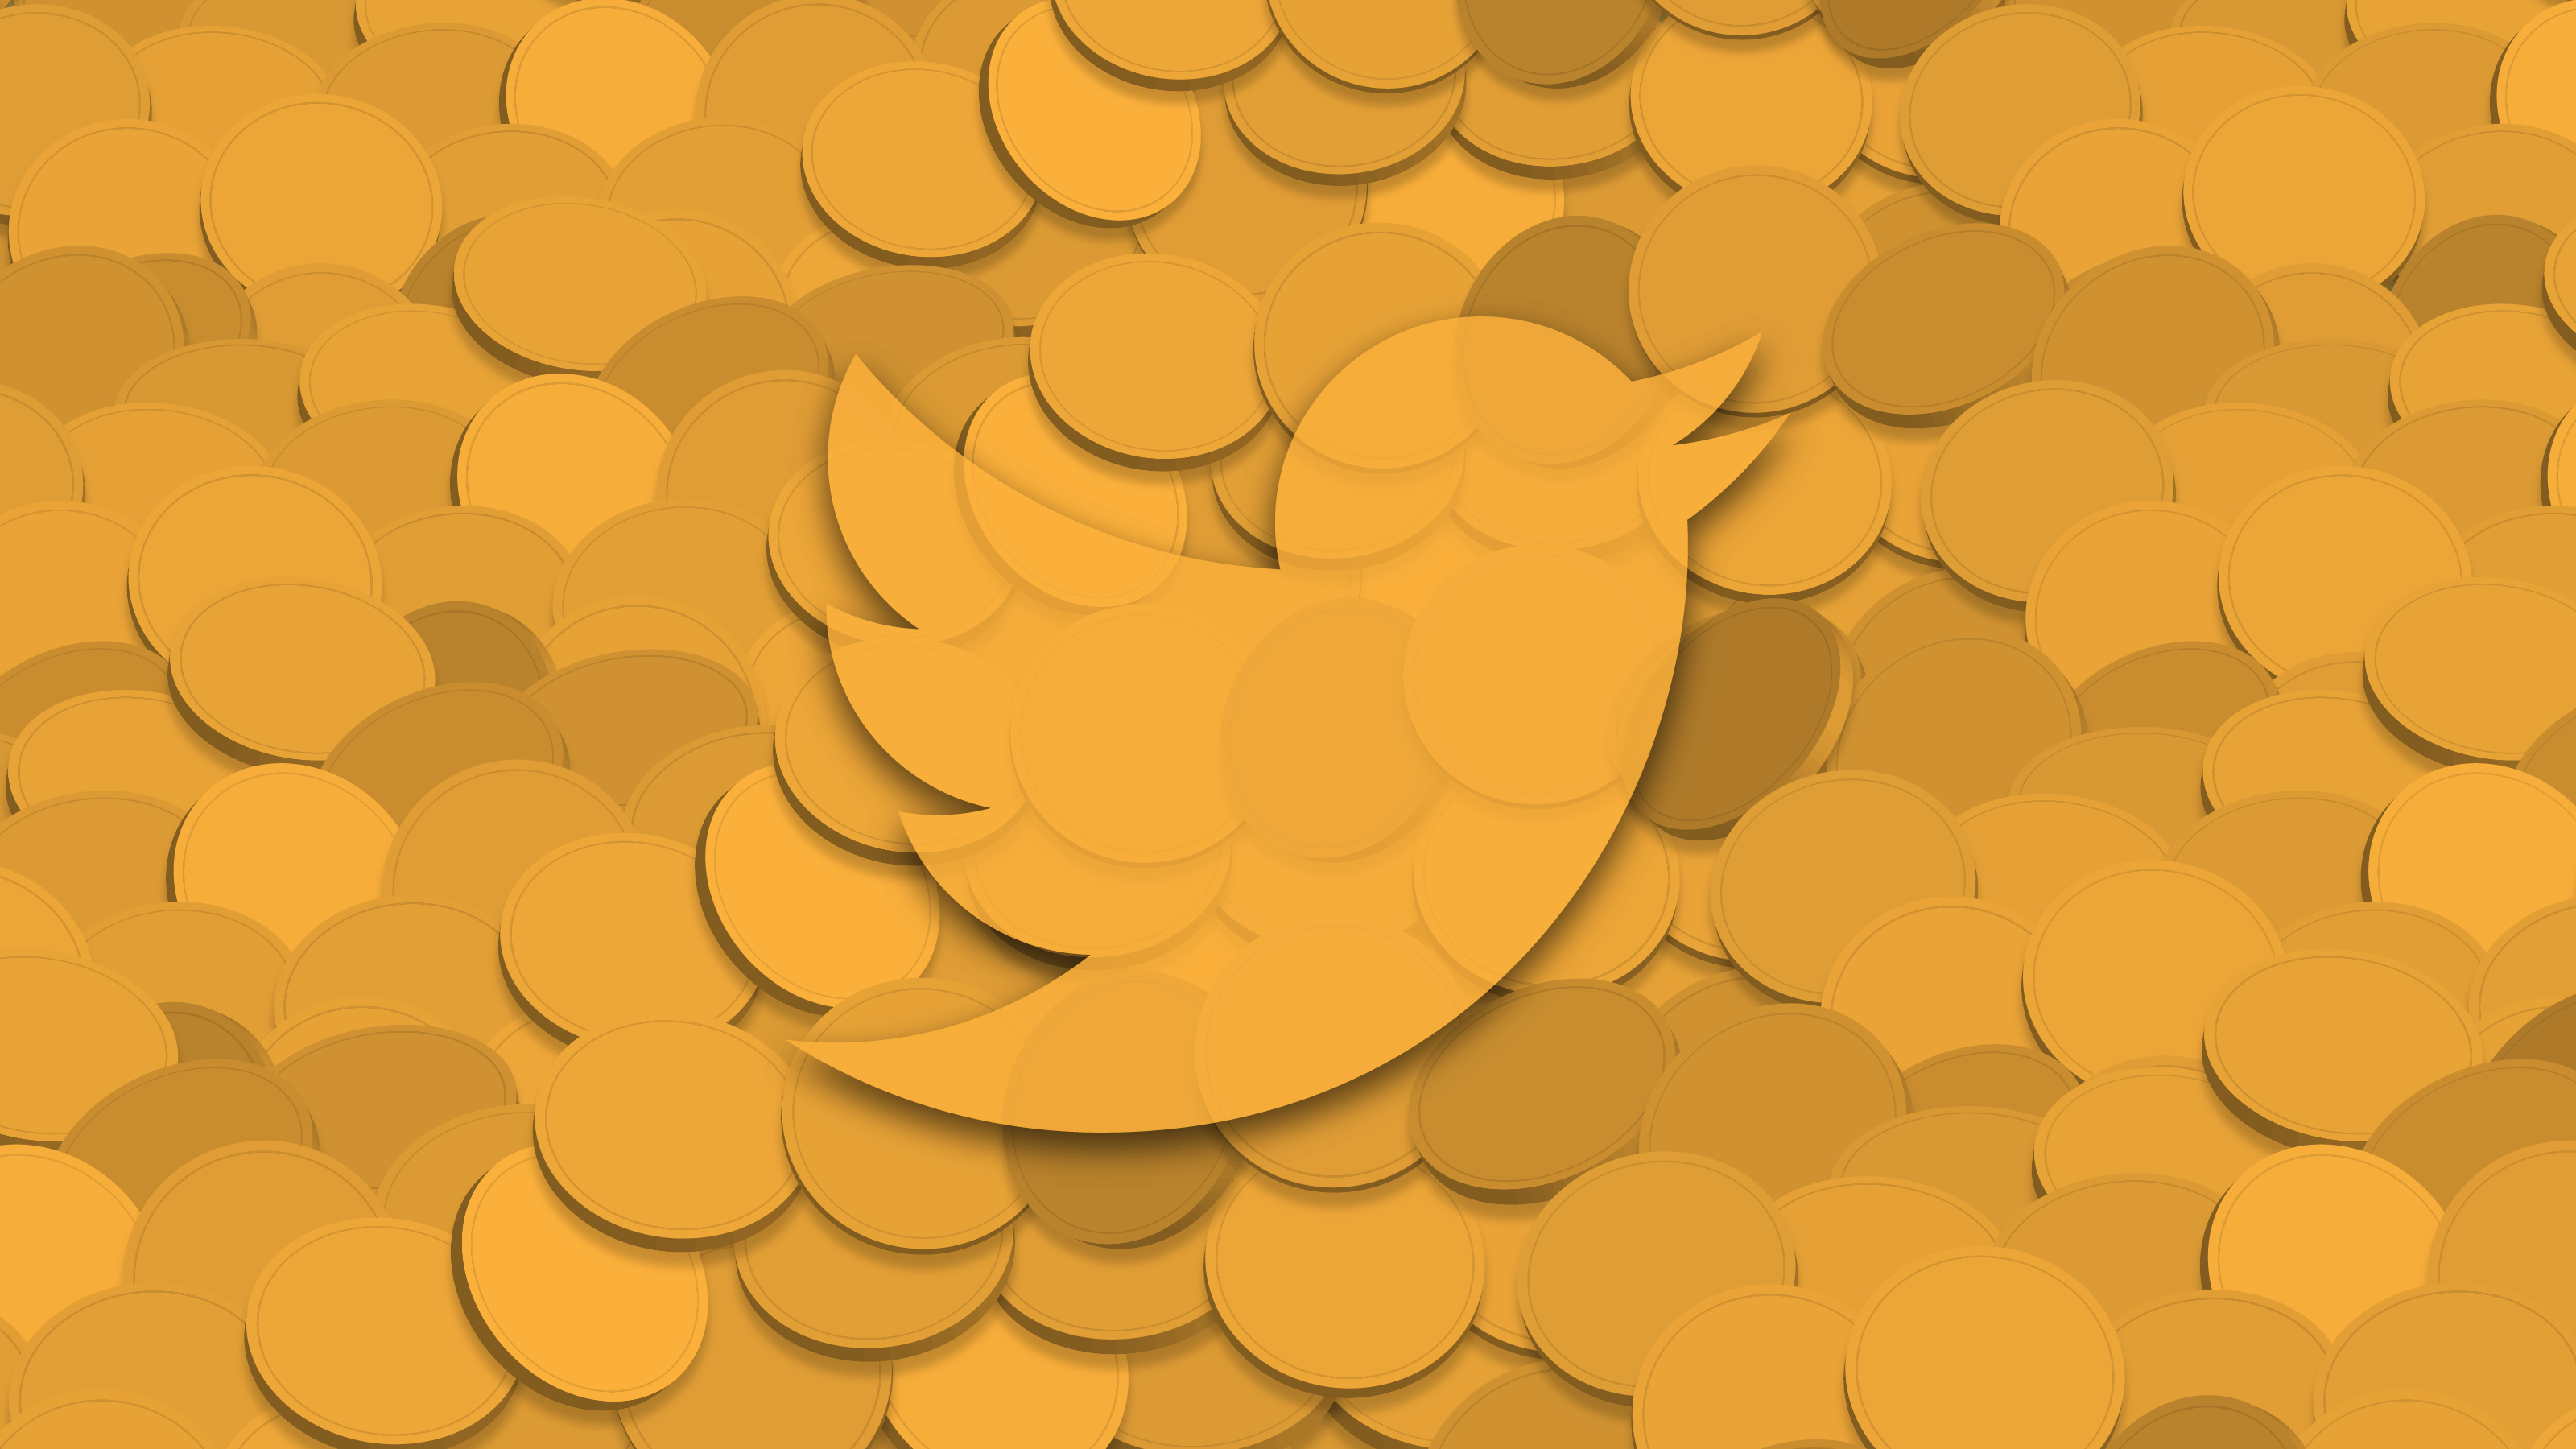 Twitter moves to ban crypto ads		 		 	Natasha Lomas         @	       	8 hours